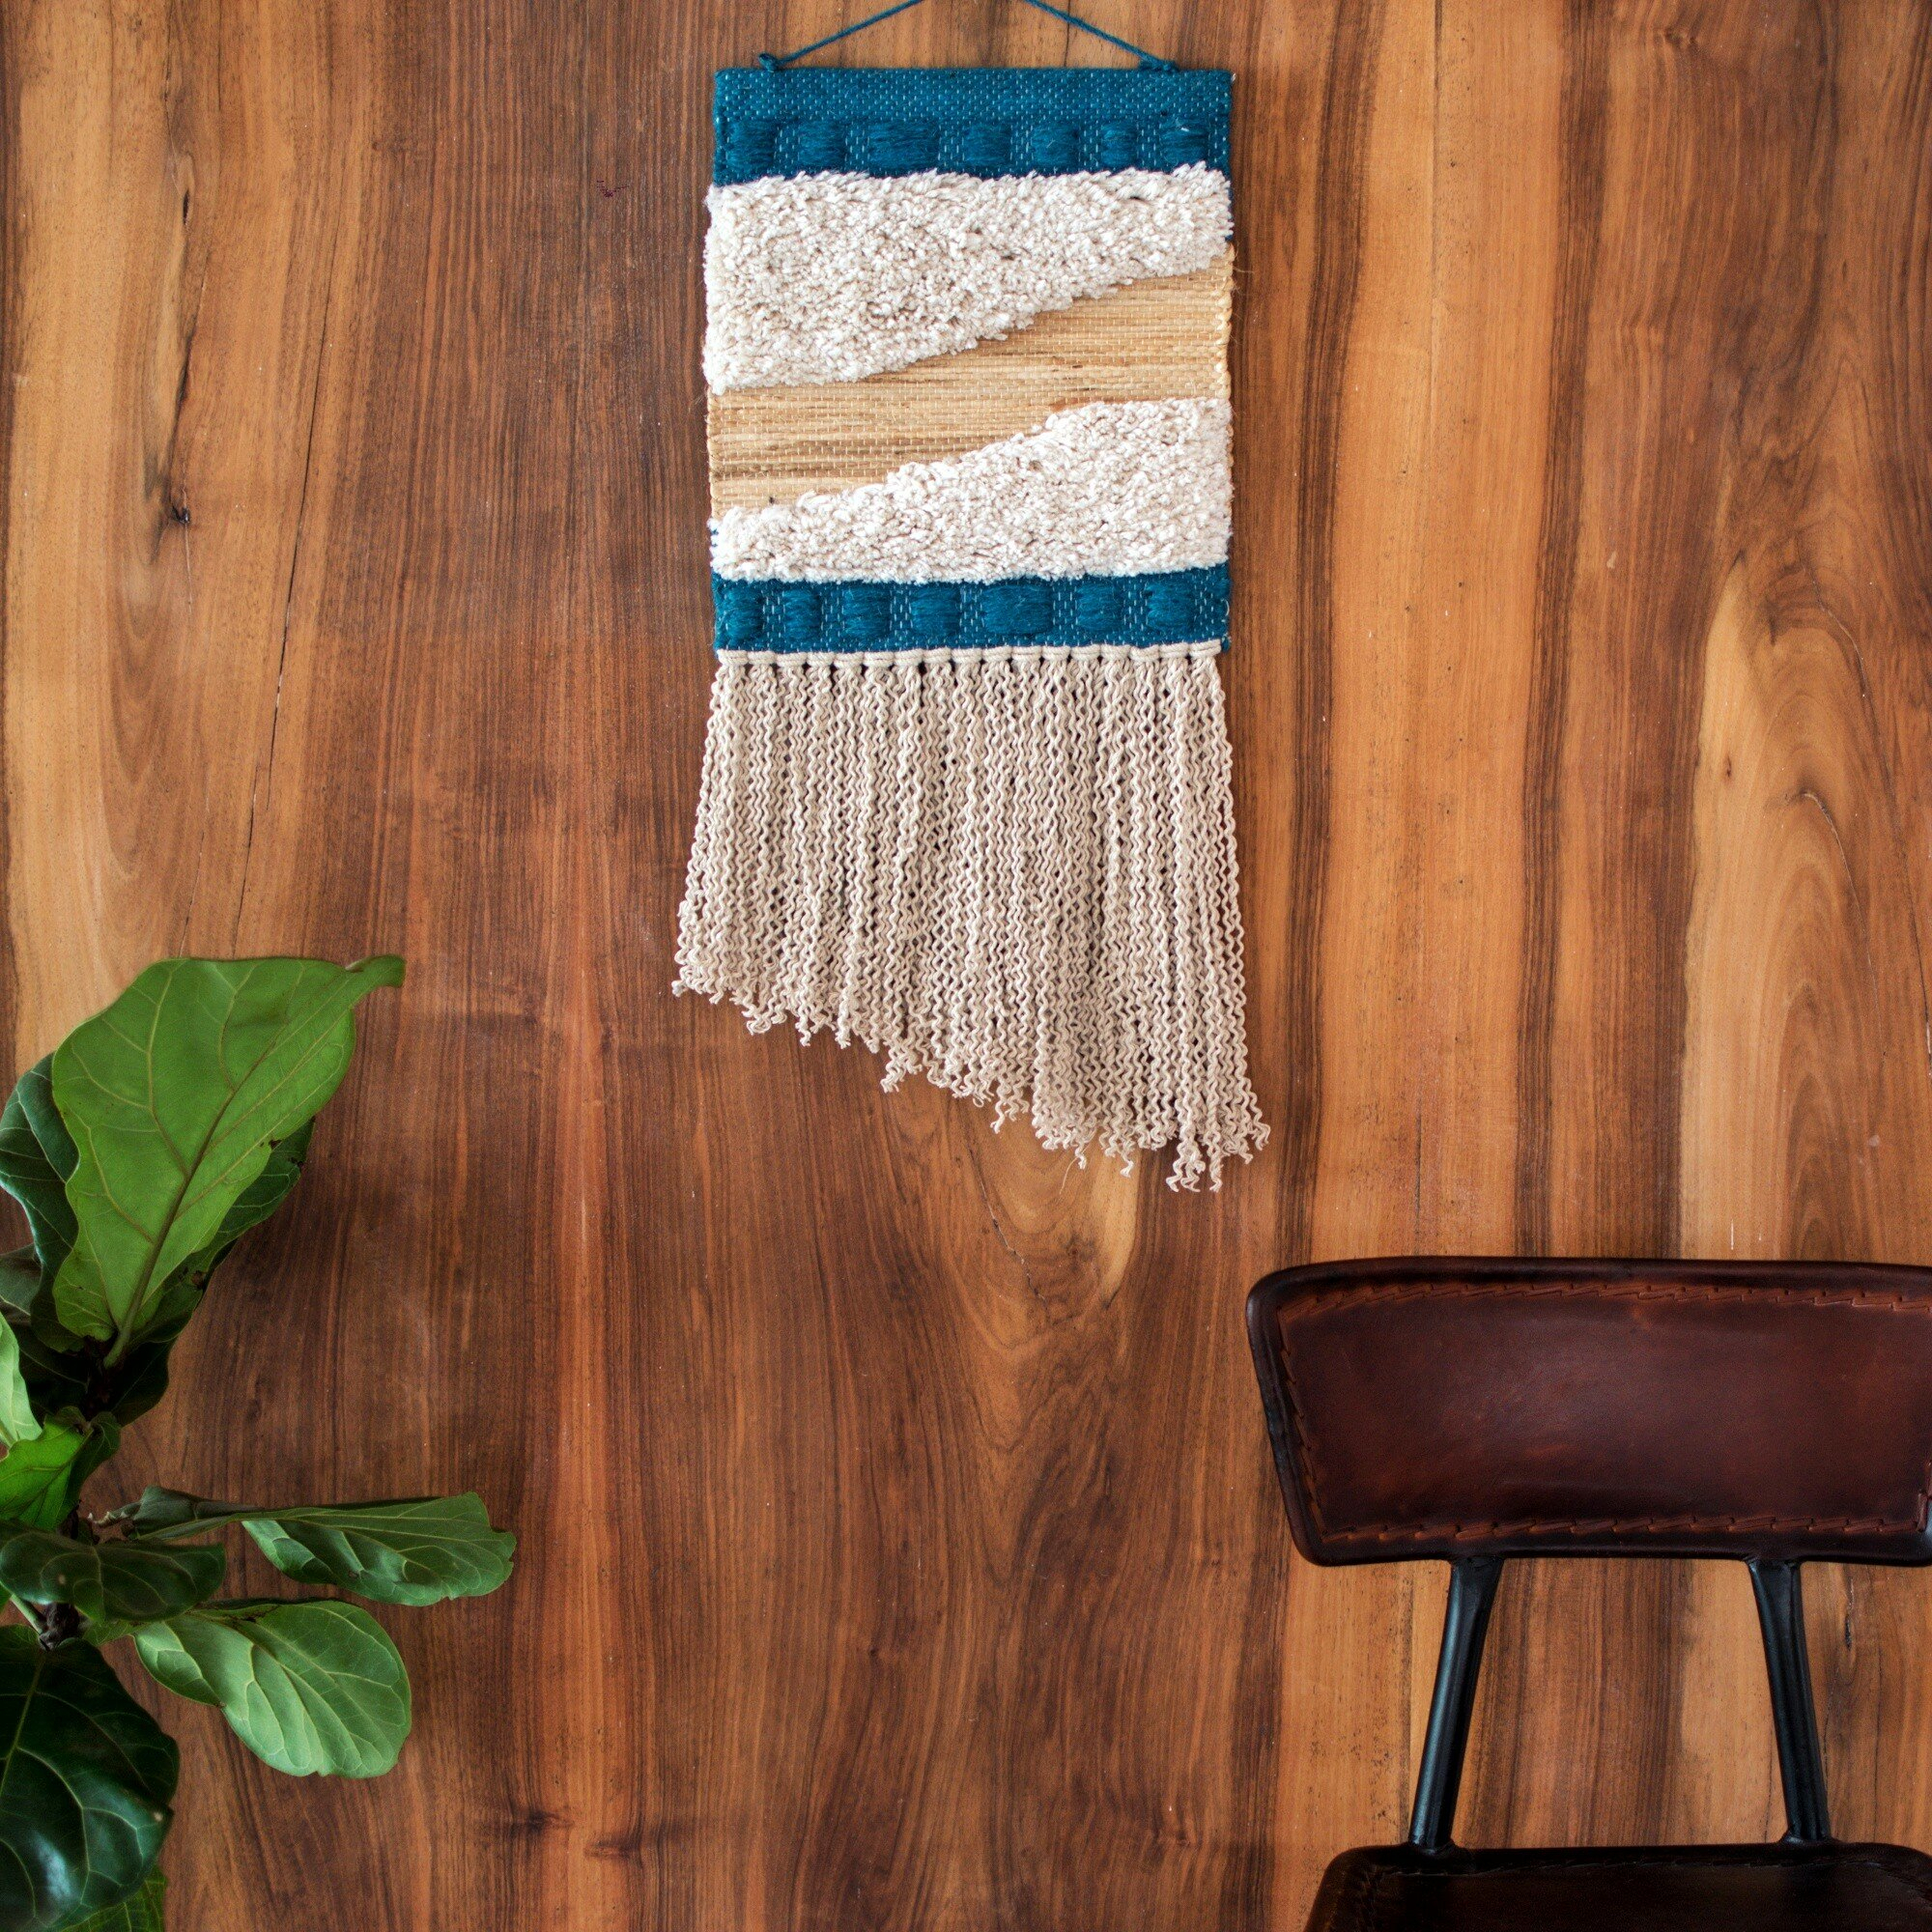 Blended Fabric Wall Hanging With Hanging Accessories Included Regarding 2018 Blended Fabric Wall Hangings (View 11 of 20)